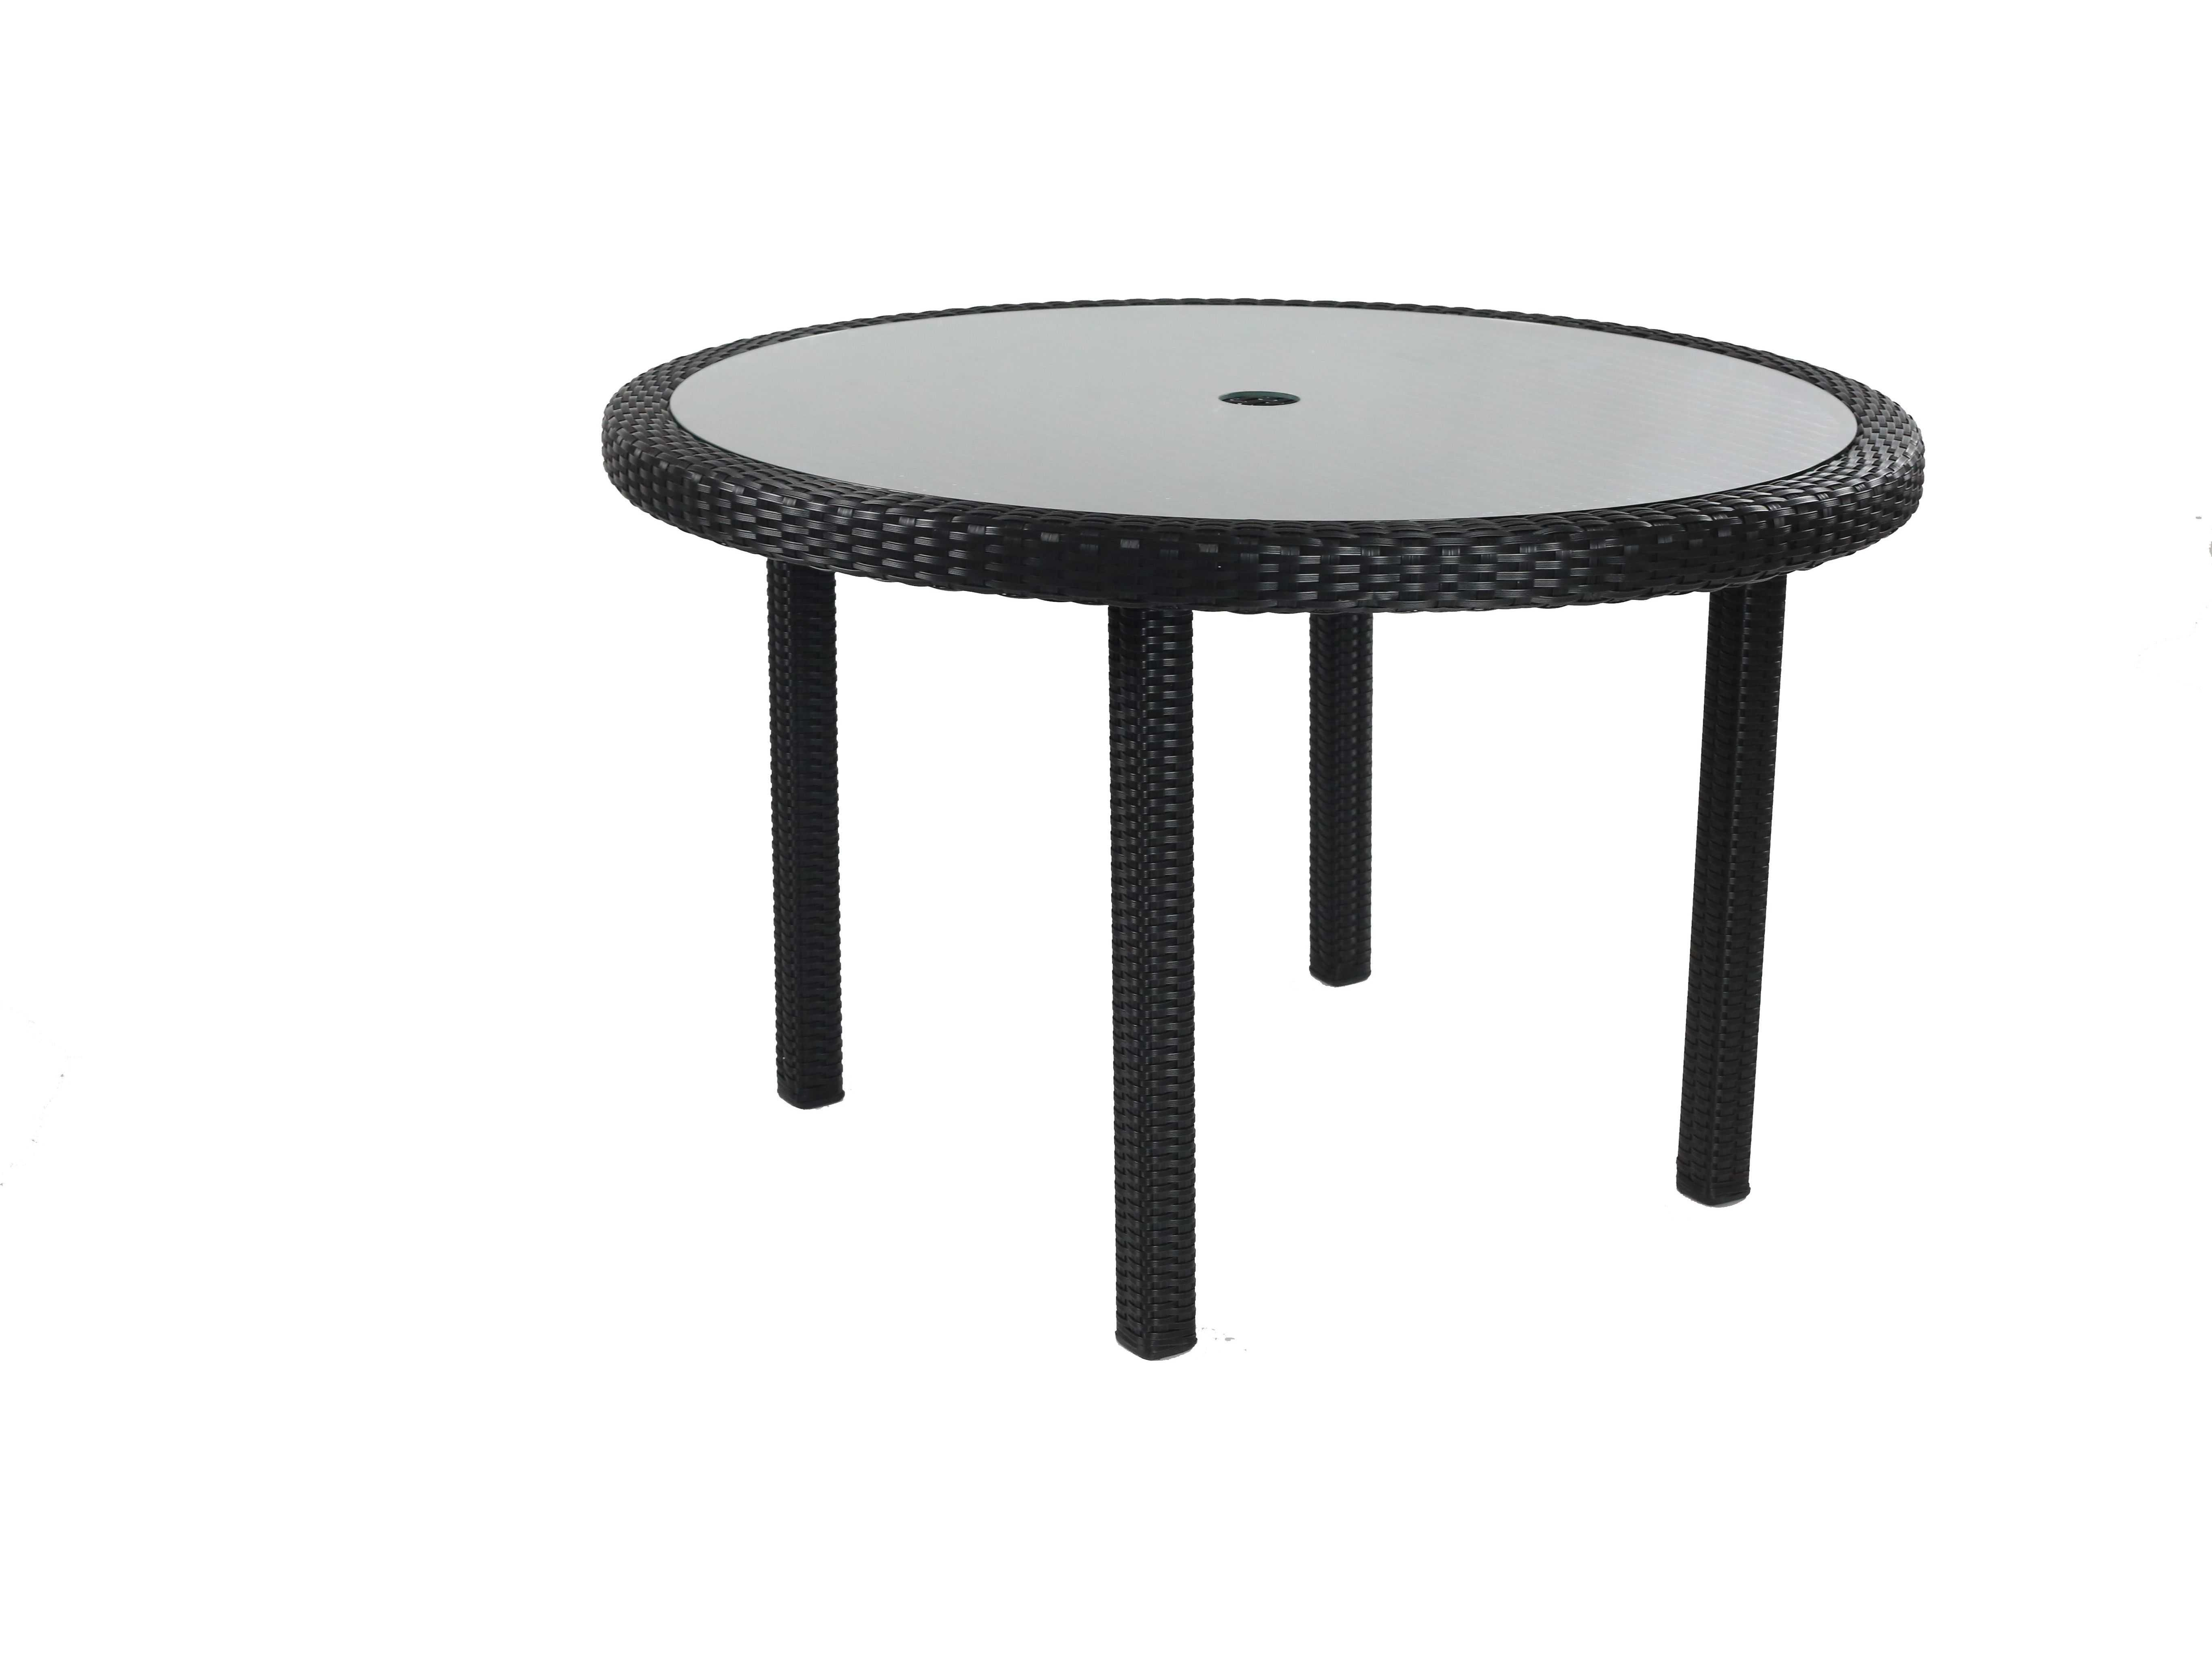 Round Glass Dining Table 48 Inches: Caluco Dijon Wicker Majestick Black 48'' Wide Round Dining